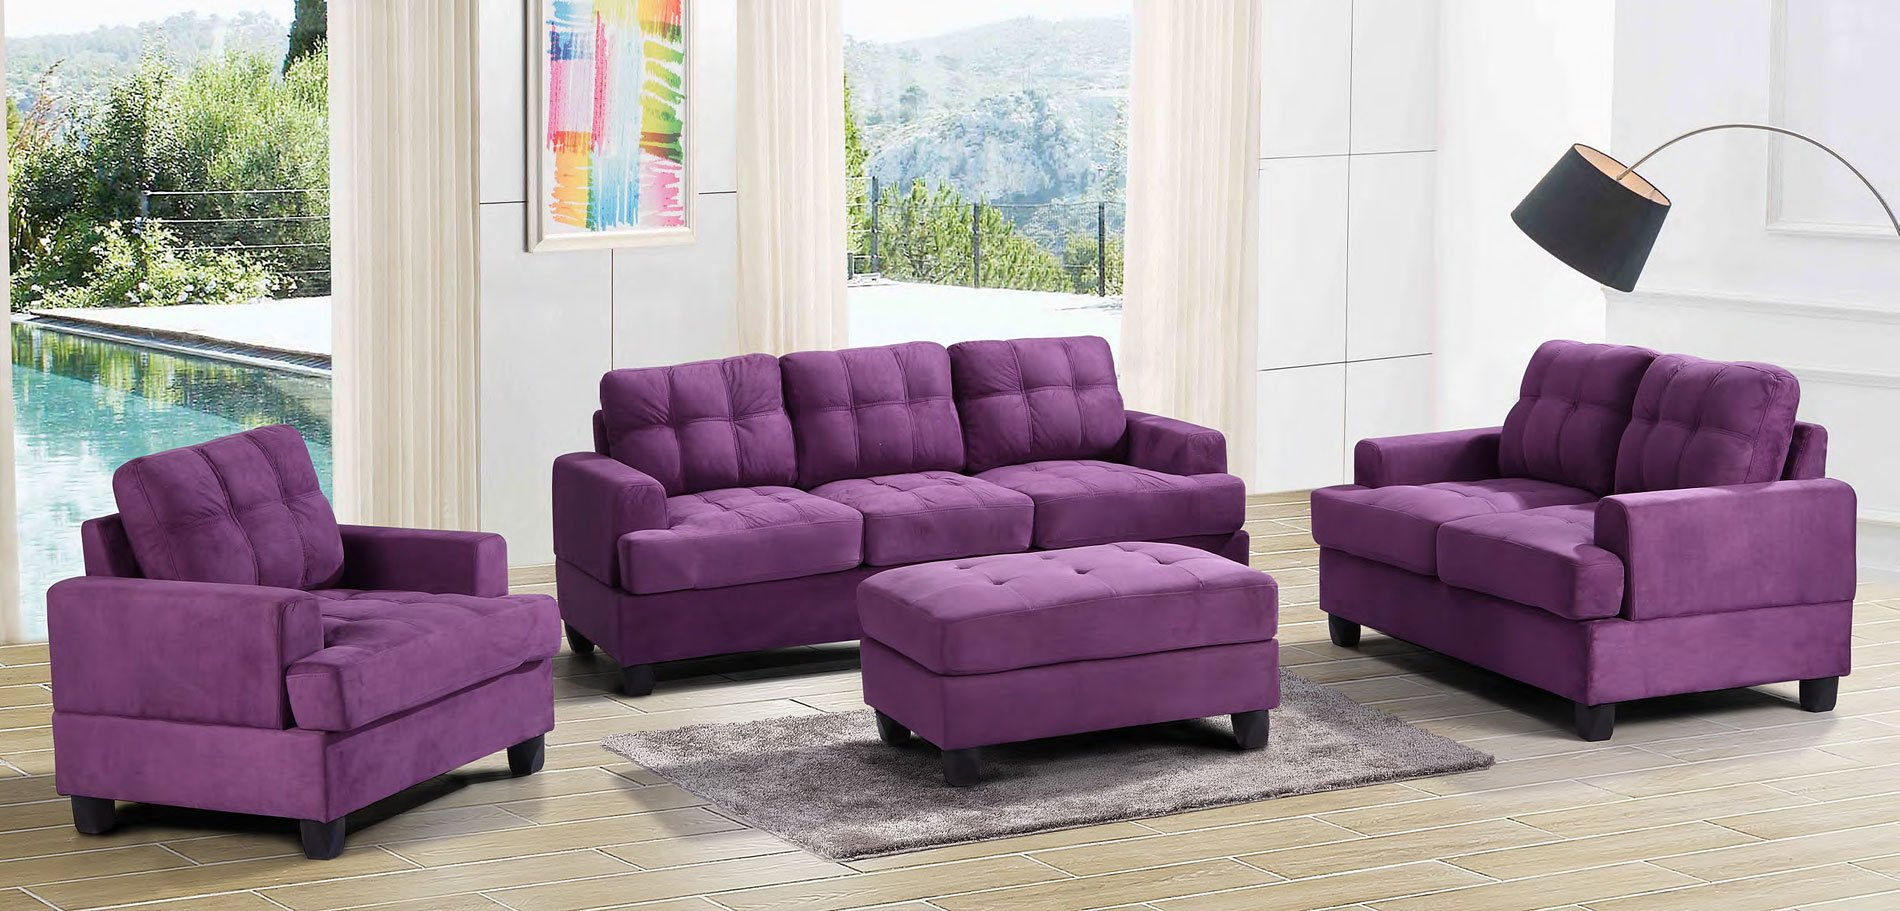 G517 Living Room Set (Purple)